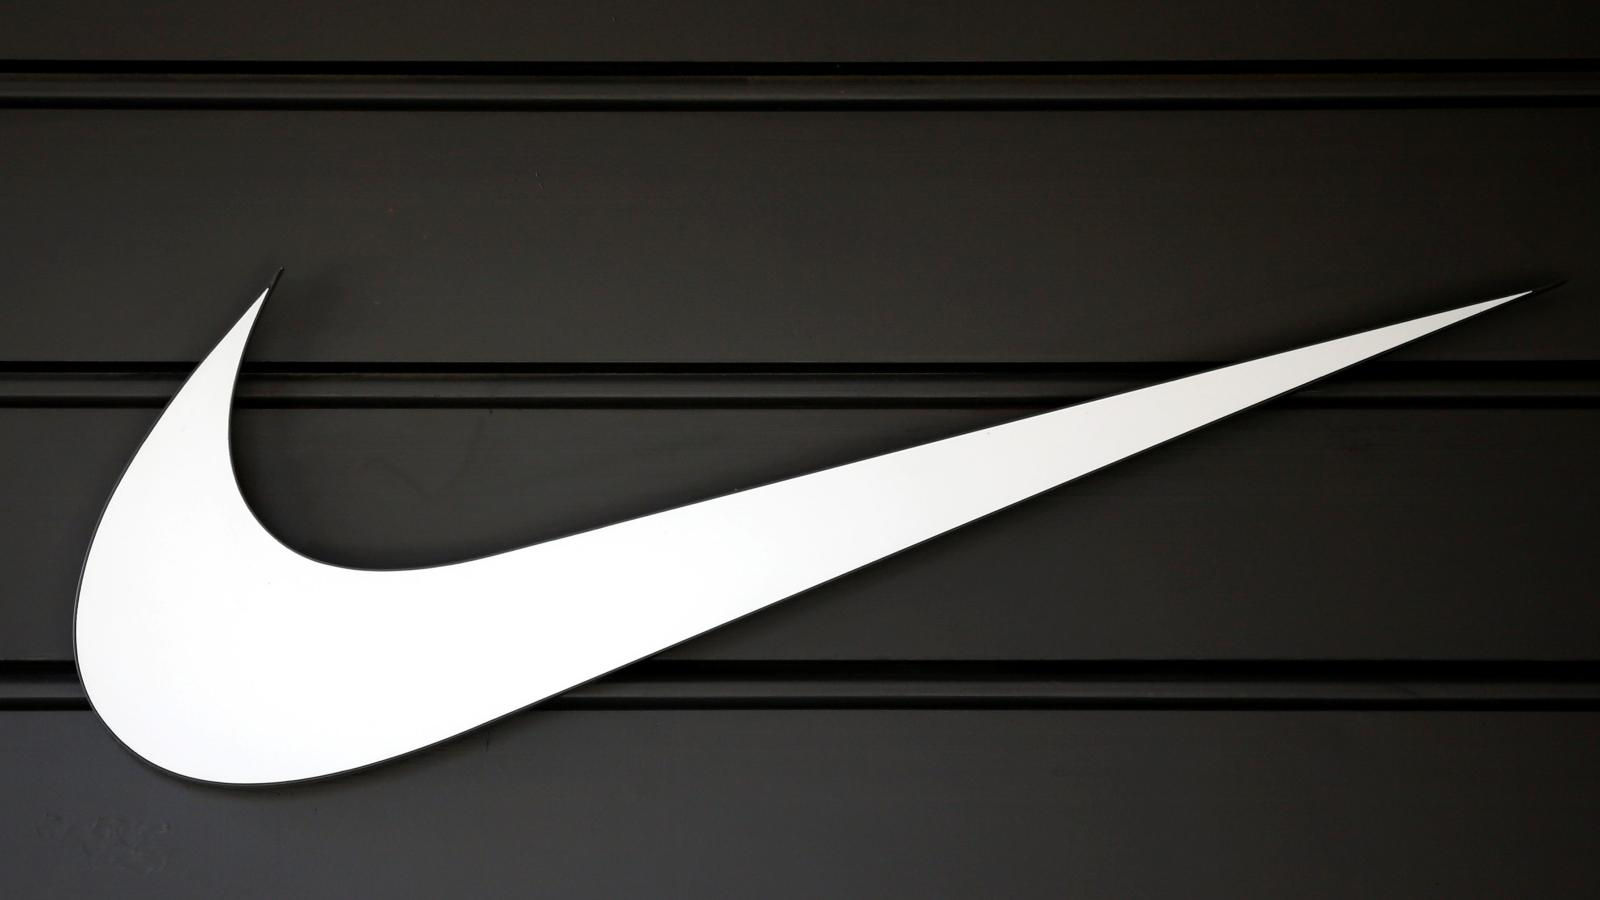 80a23a01155 Nike s new partnership with Amazon brings great benefits and major risks